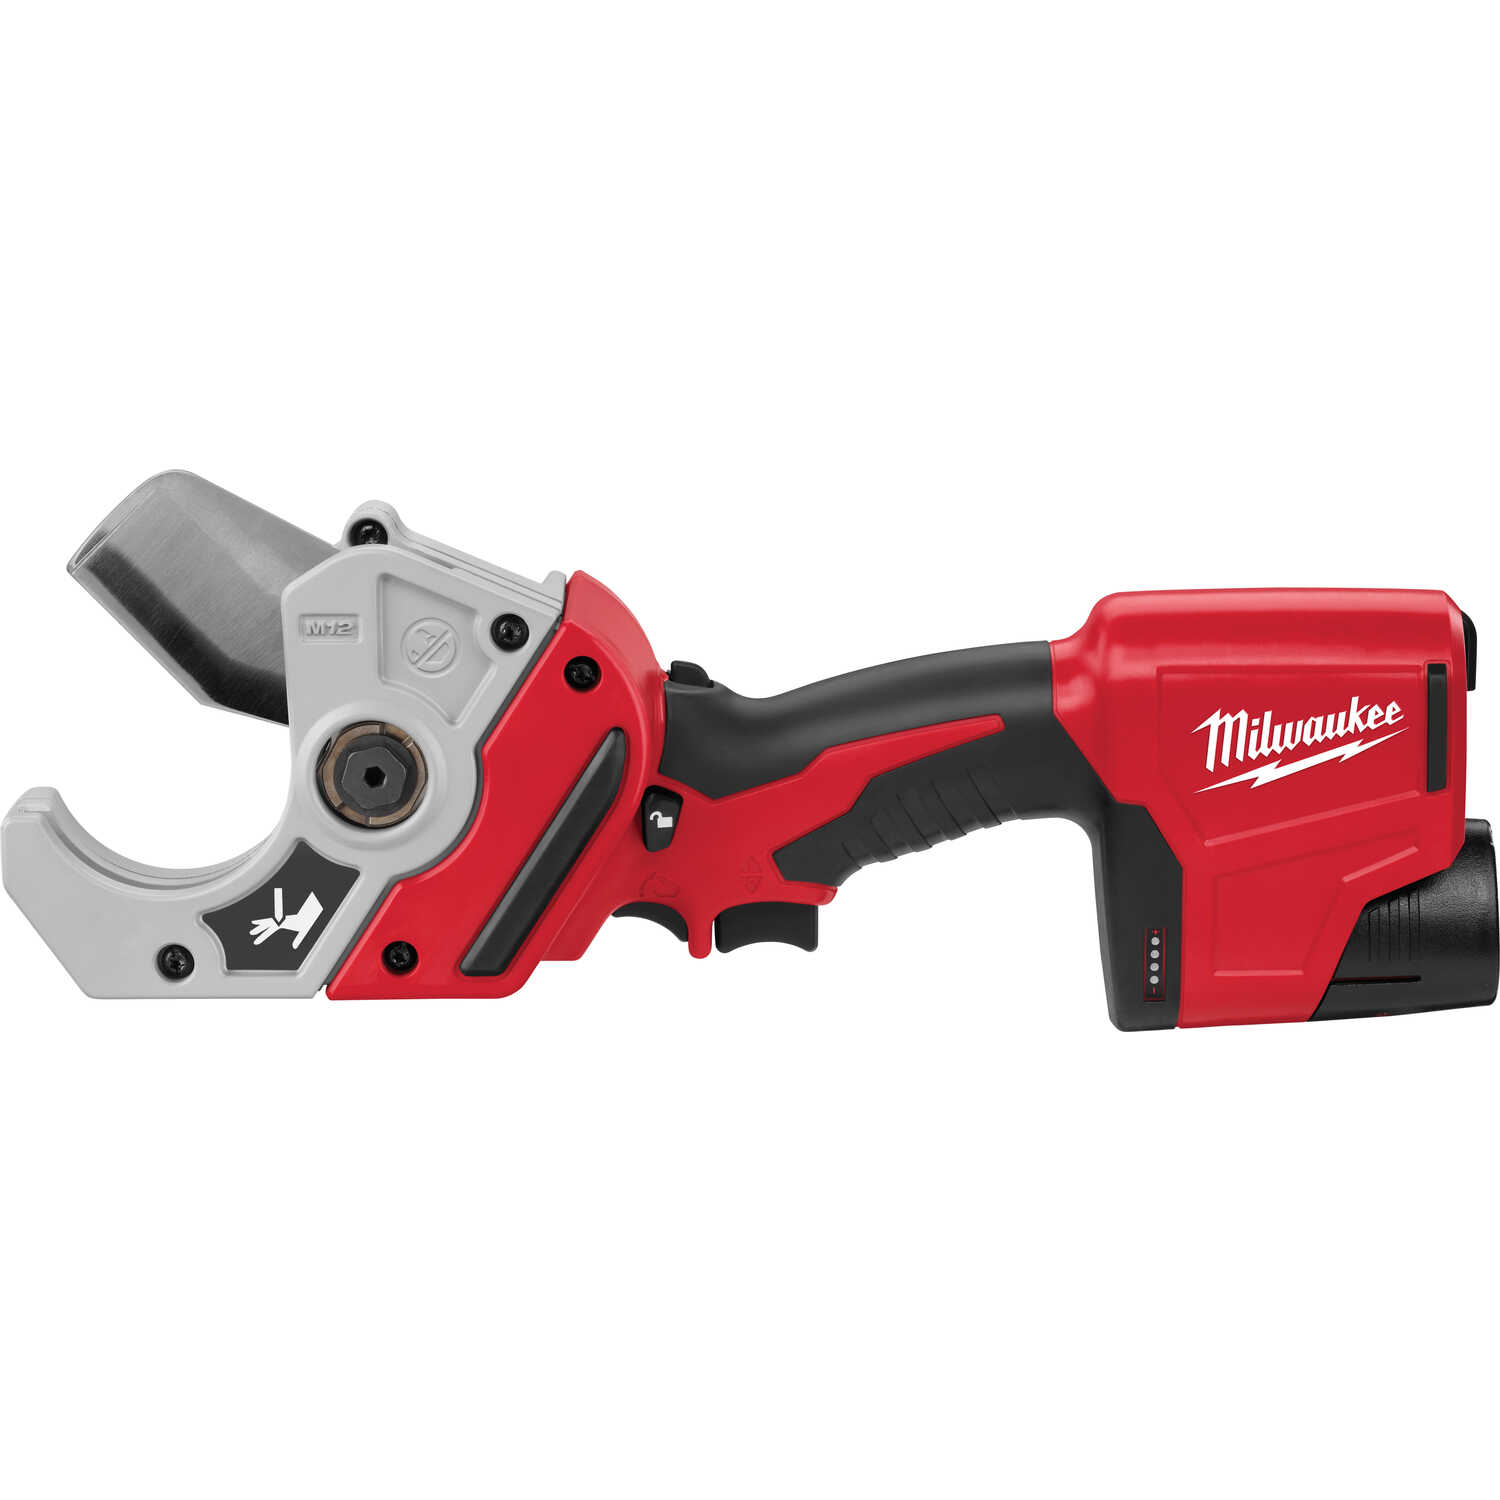 Milwaukee  M12  PVC Pipe Cutter  Black/Red  1 pk